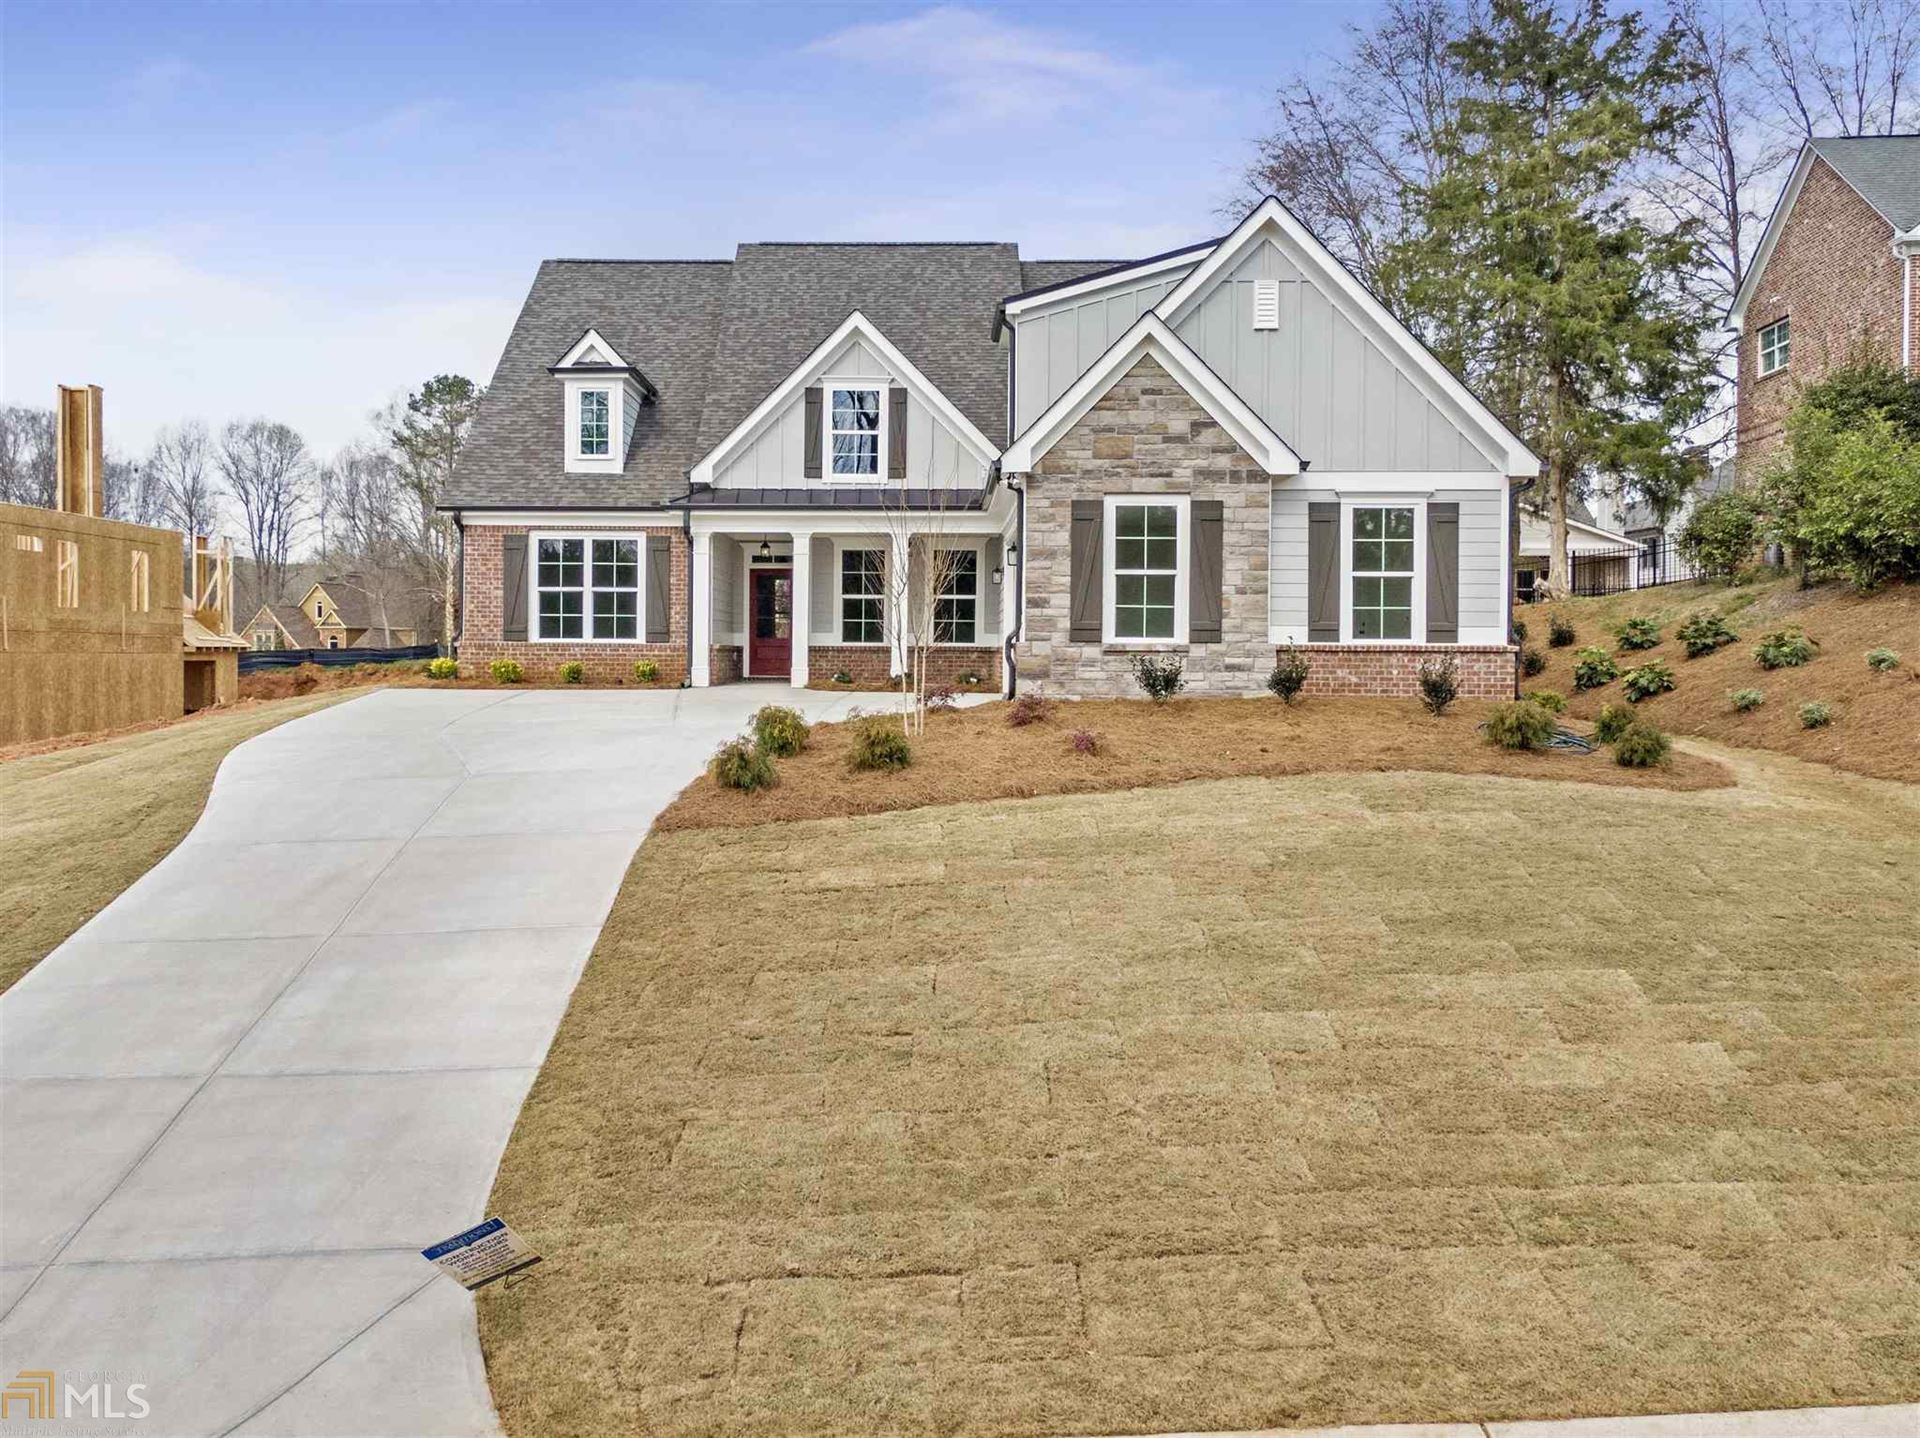 3198 Brush Arbor Ct, Jefferson, GA 30549 - #: 8912375